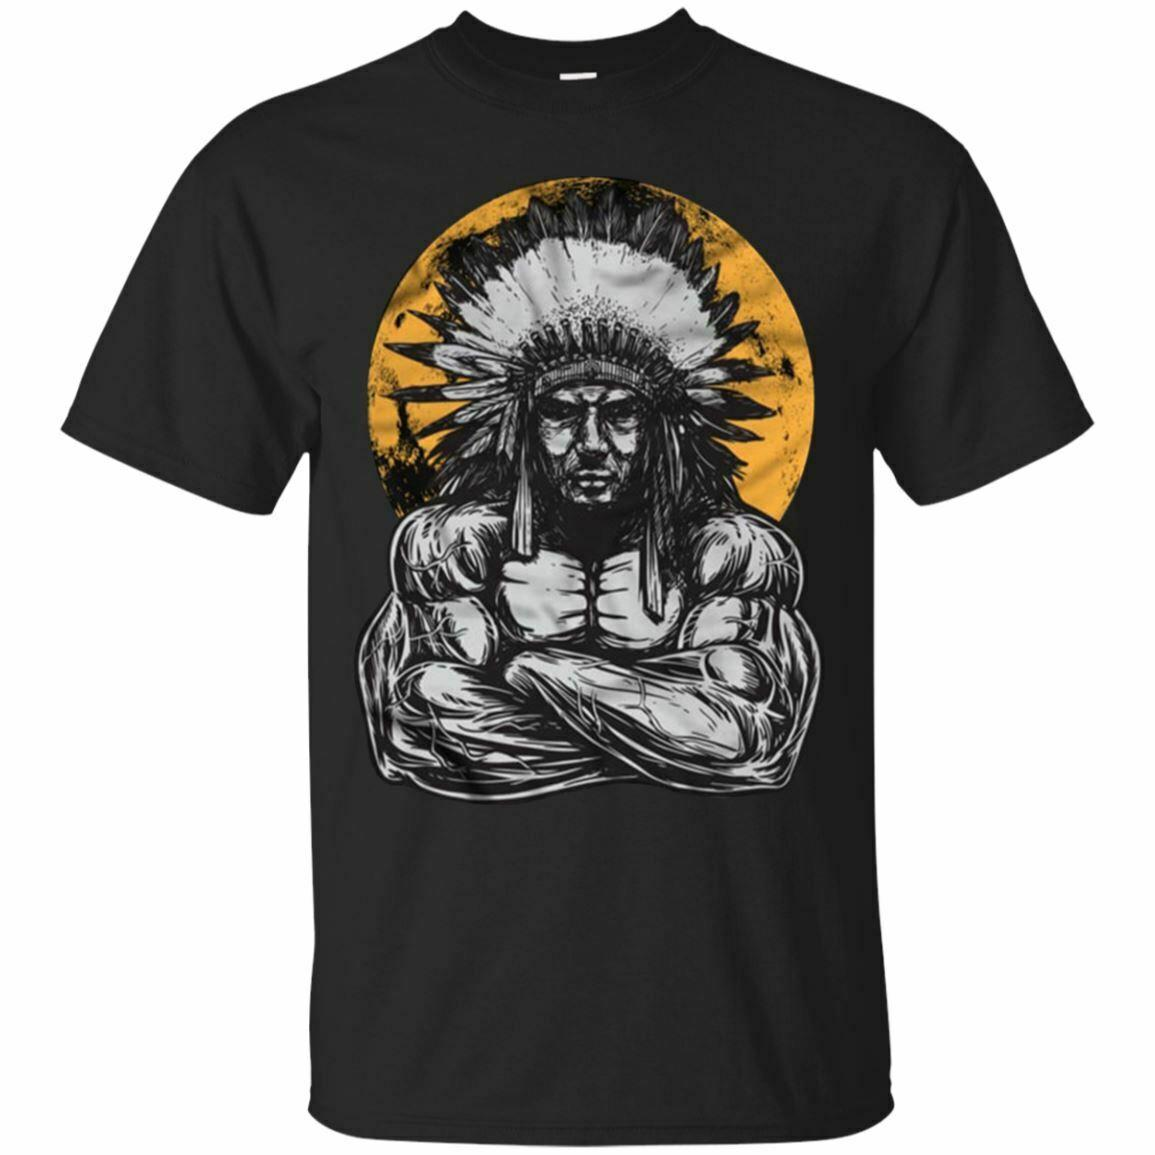 Indian Chief Body Building T-Shirt Gym Club Men's Tee Shirt Short Sleeve S-5XL Men Women Unisex Fashion tshirt Free Shipping black